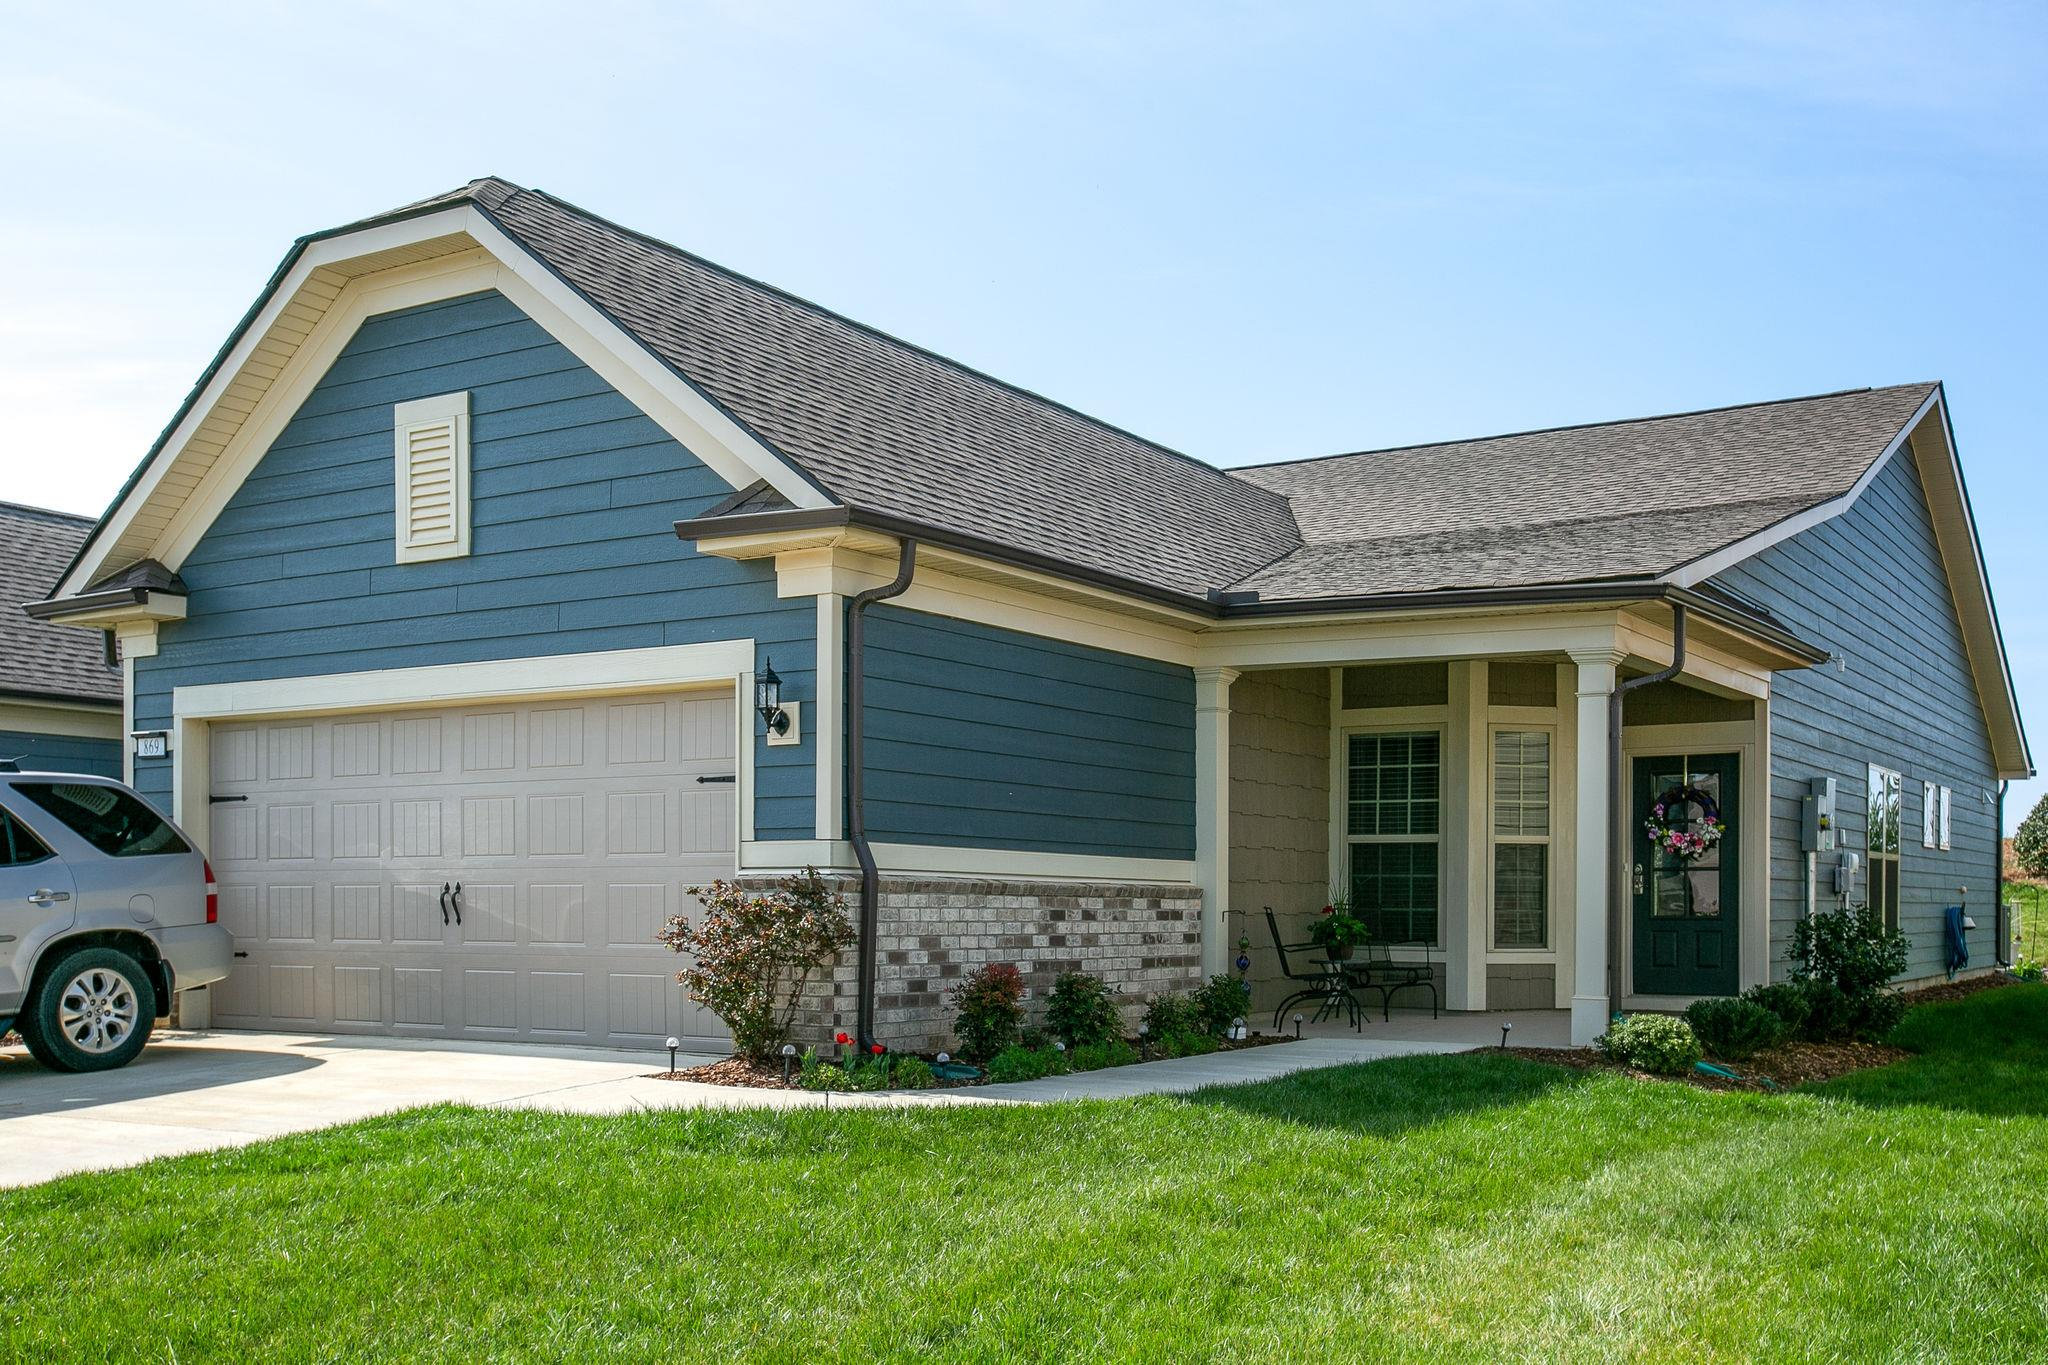 869 Clay Pl, Spring Hill, Tennessee